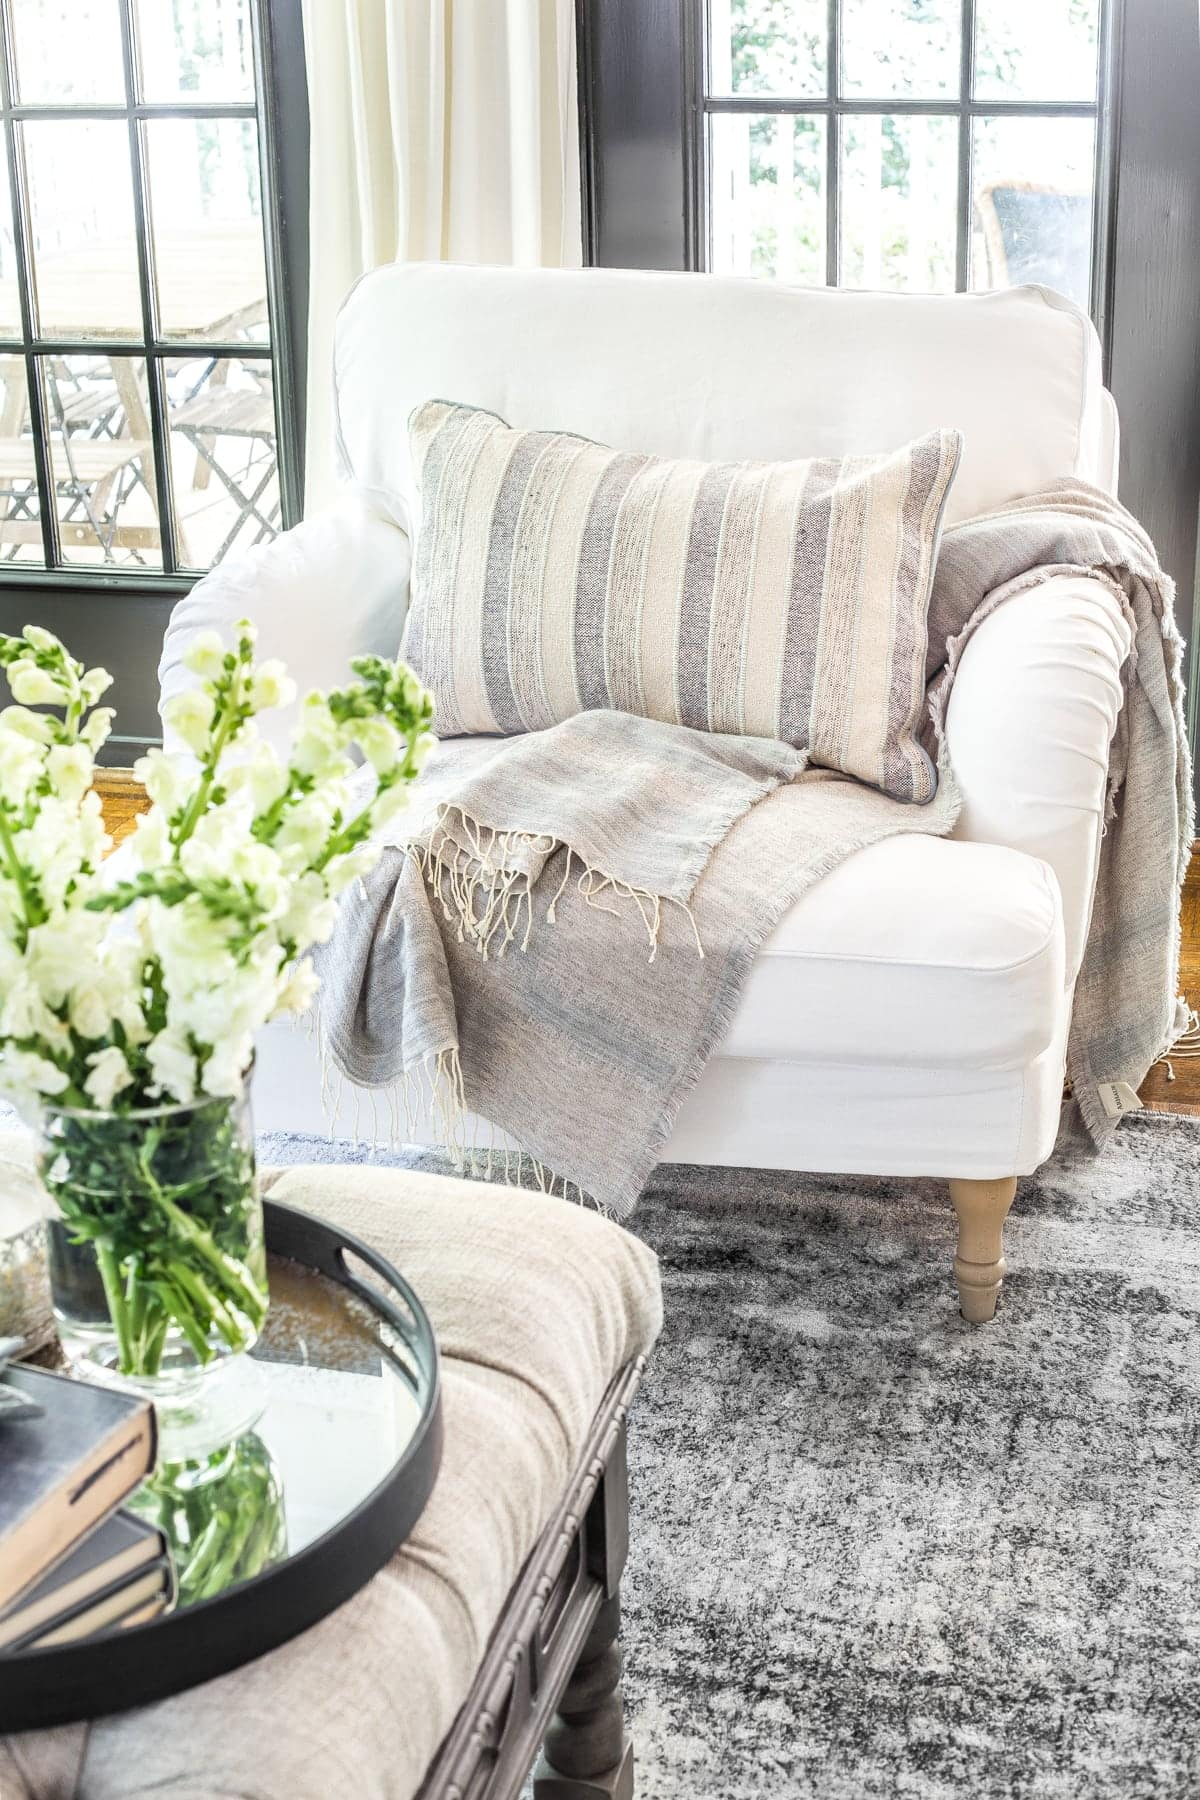 lovely ikea living room | New Slipcovers for the IKEA Living Room Furniture - Bless ...